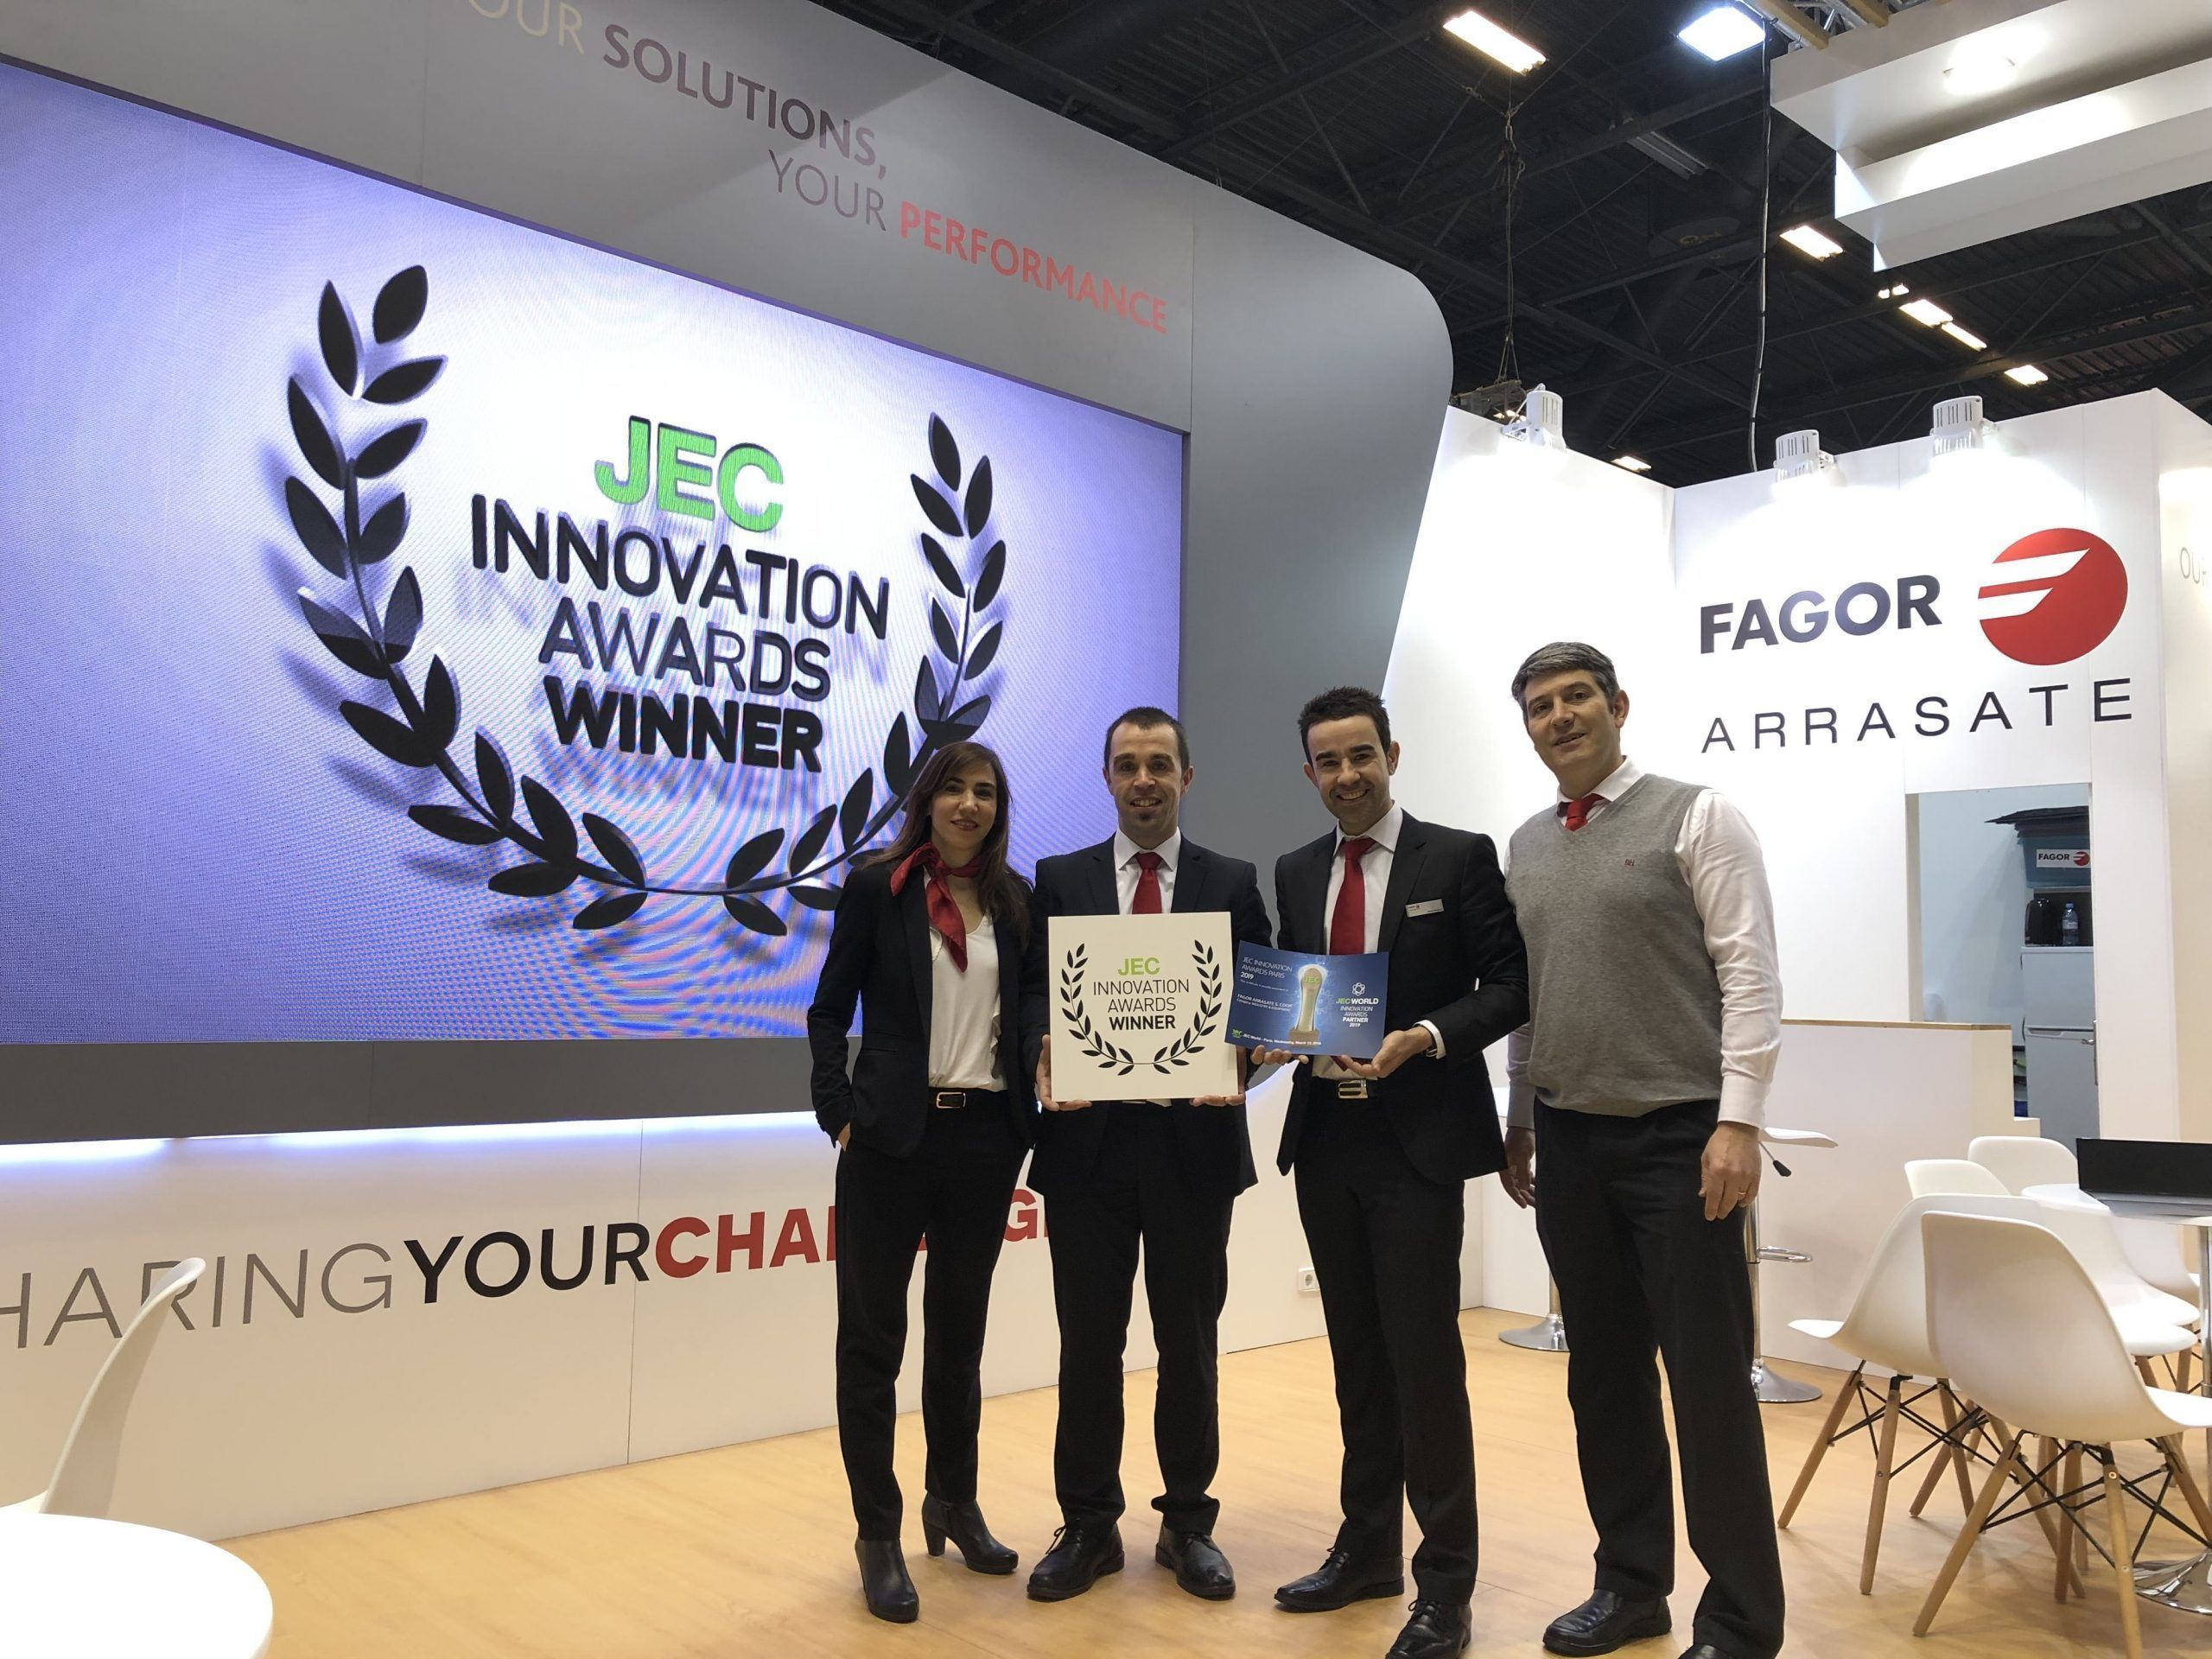 Fagor Arrasate event: Fagor Arrasate's collaborative project of an ultra-fast consolidator machine system receives the JEC Innovation Award